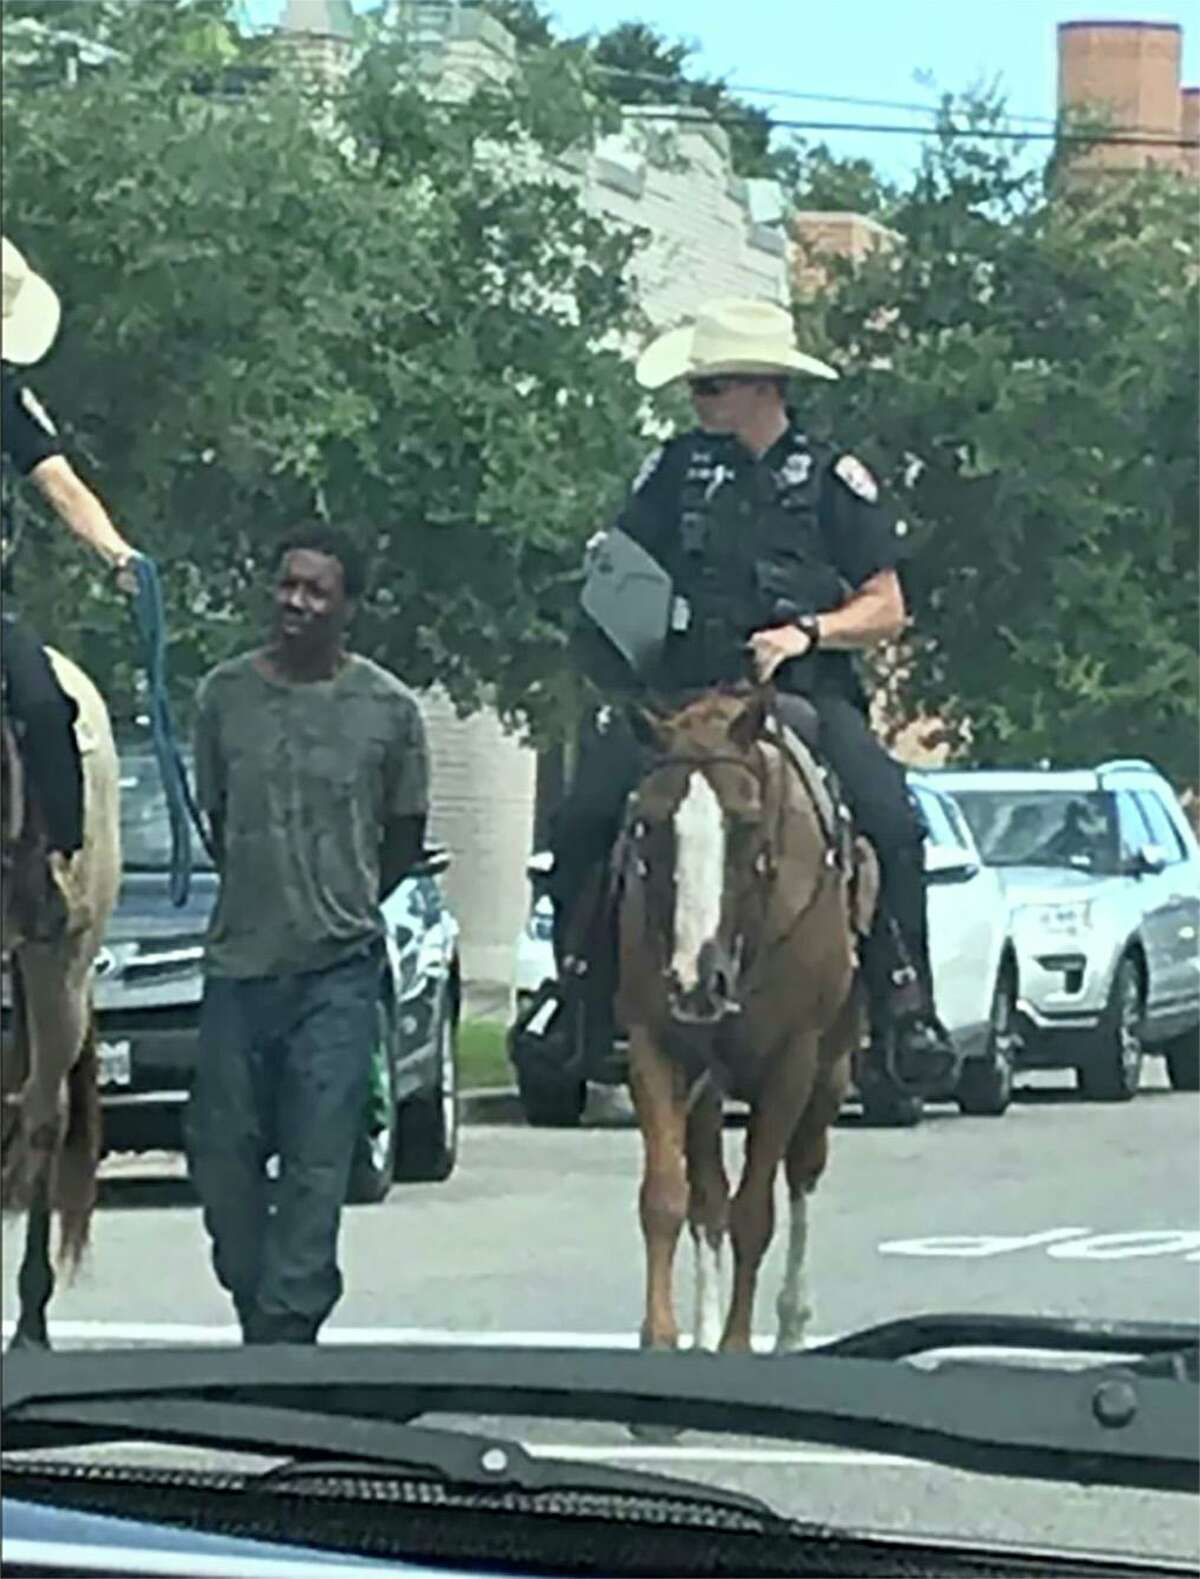 """Donald Neely, 43, is led by two Galveston police officers on horseback on Saturday. On Monday, a statement attributed to Chief Vernon L. Hale III said, """"Although this is a trained technique and best practice in some scenarios, I believe our officers showed poor judgment in this instance and could have waited for a transport unit at the location of the arrest."""""""